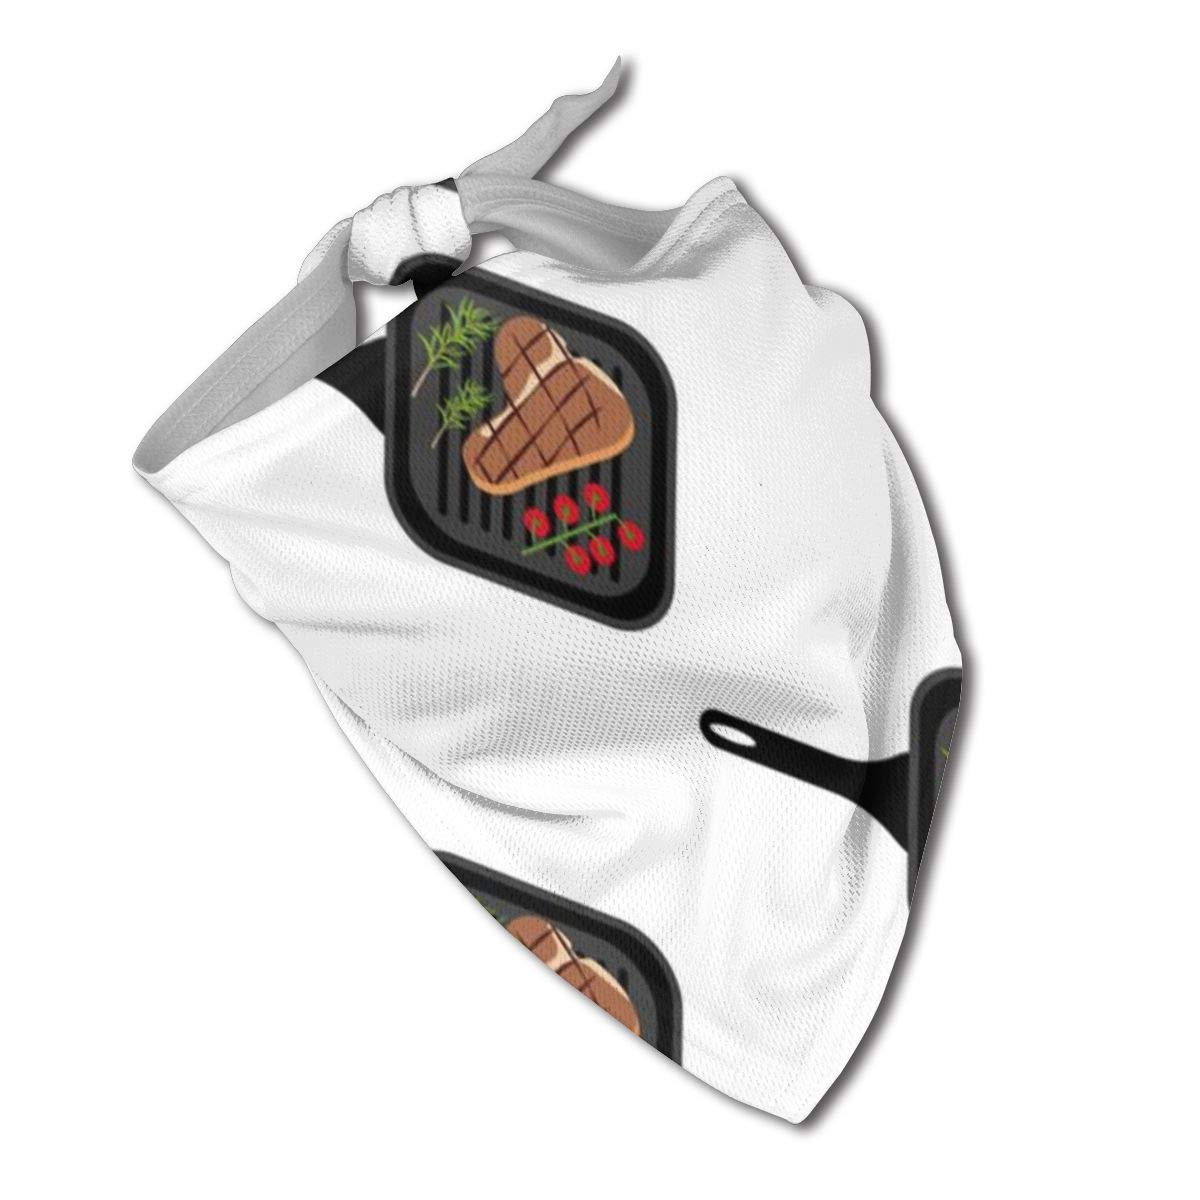 Amazon.com : Z-YY Steak On Grill Pan Bandana Pet Triangle ...